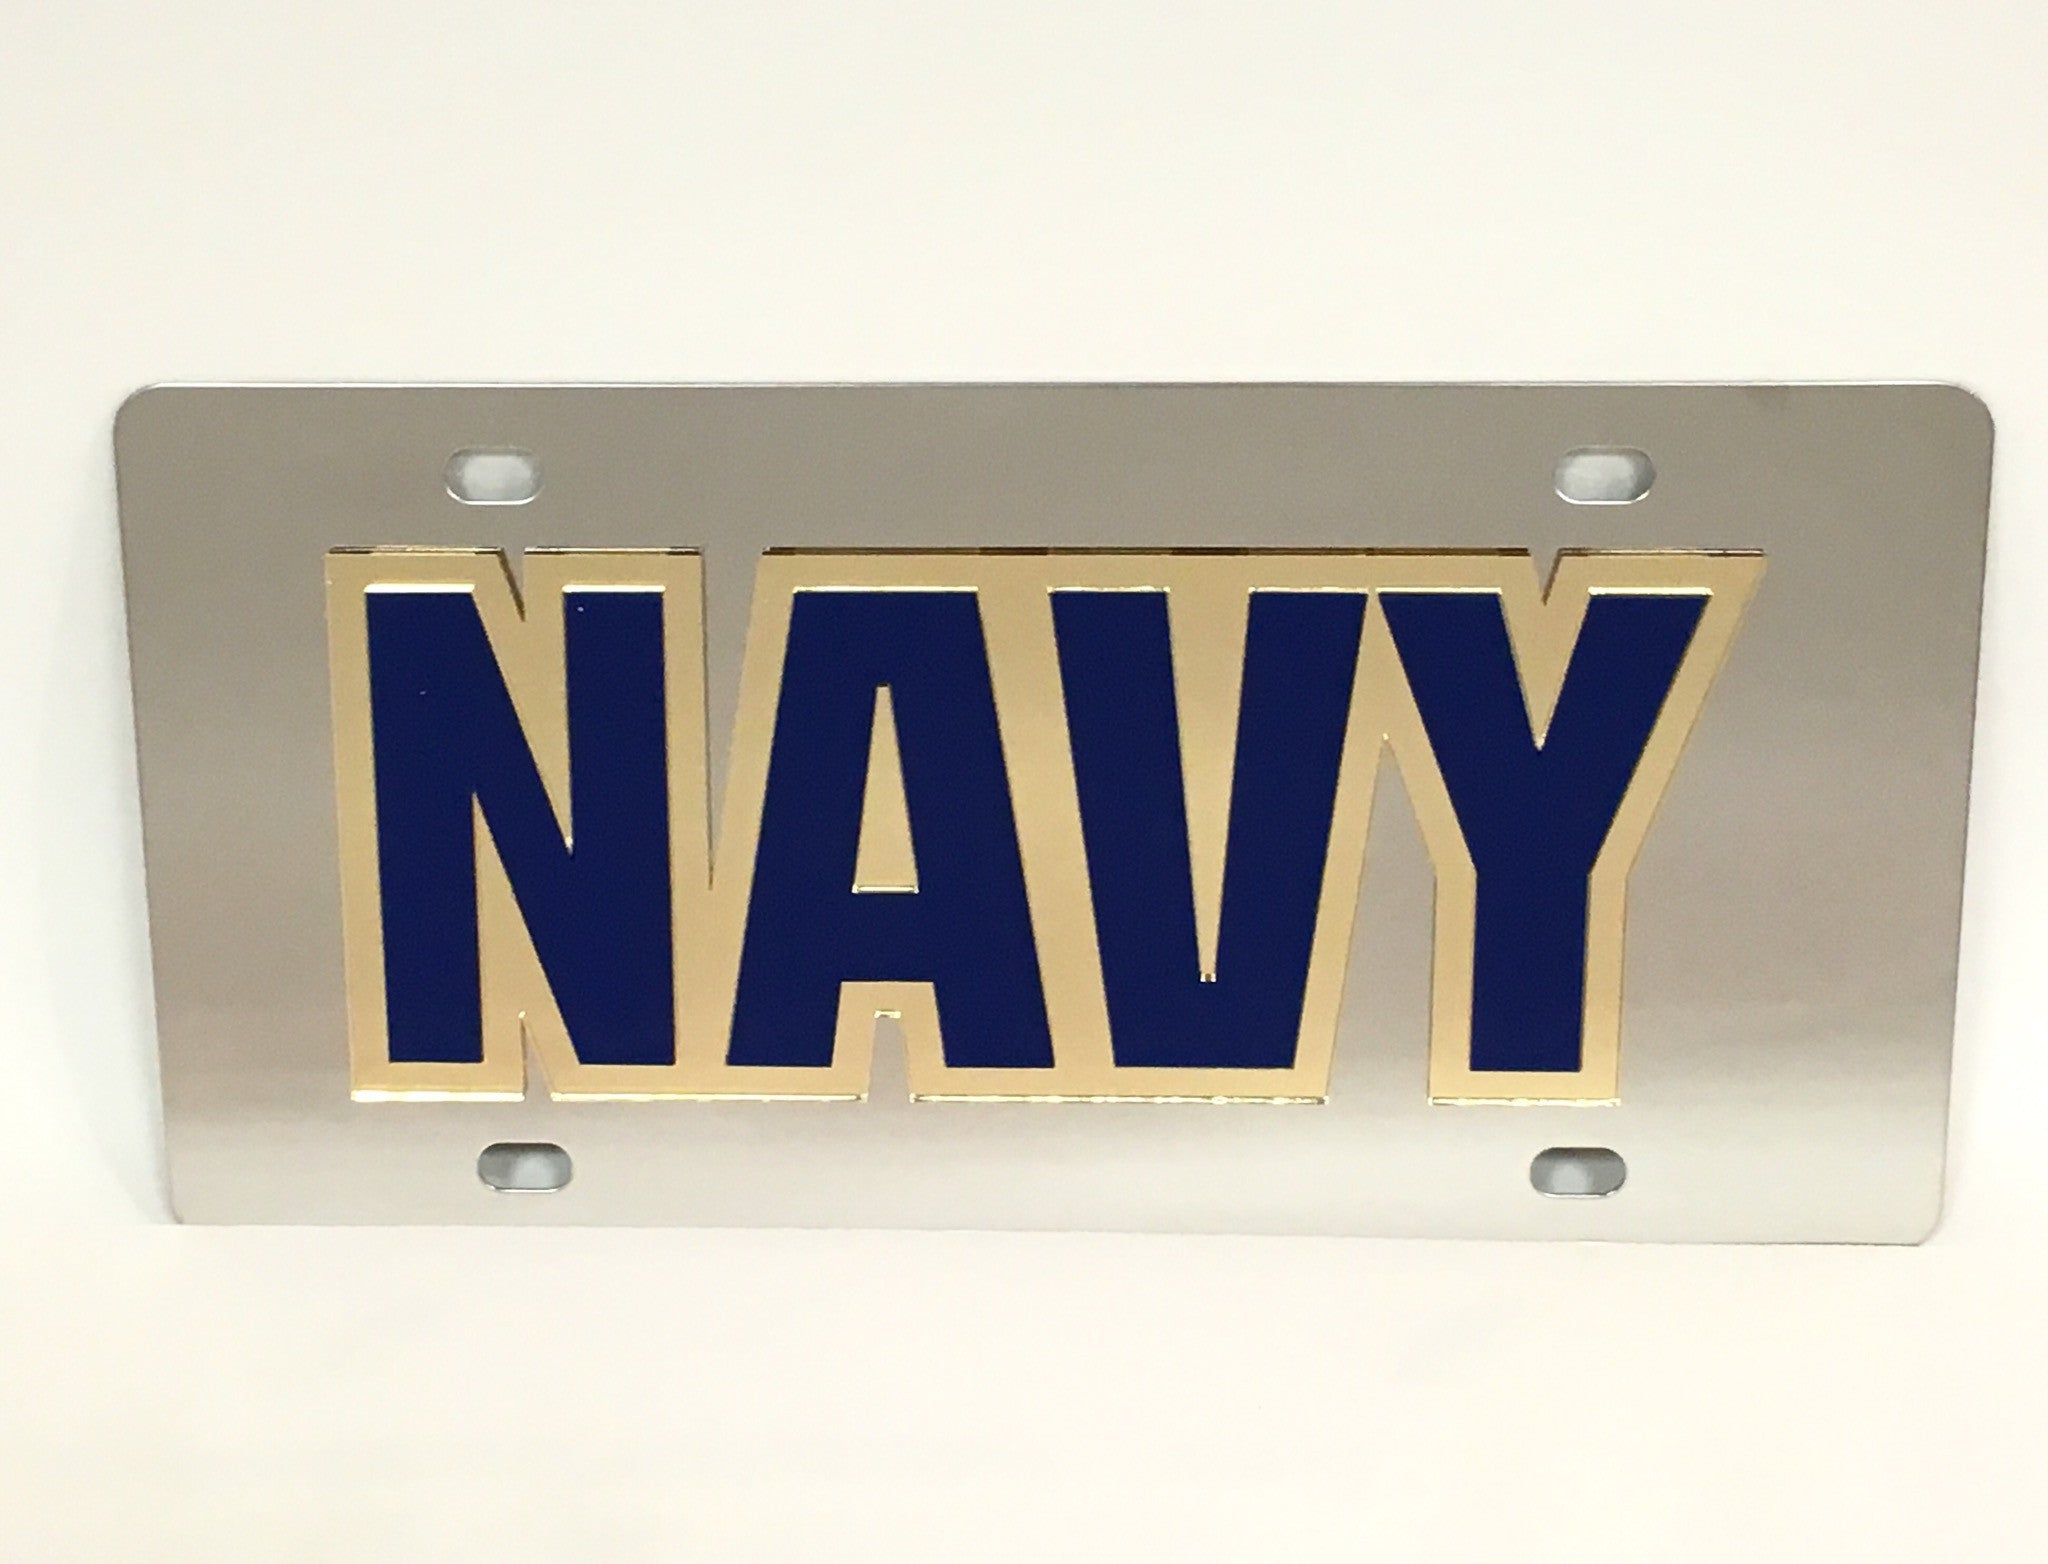 U.S. Navy Stainless Steel License Plate